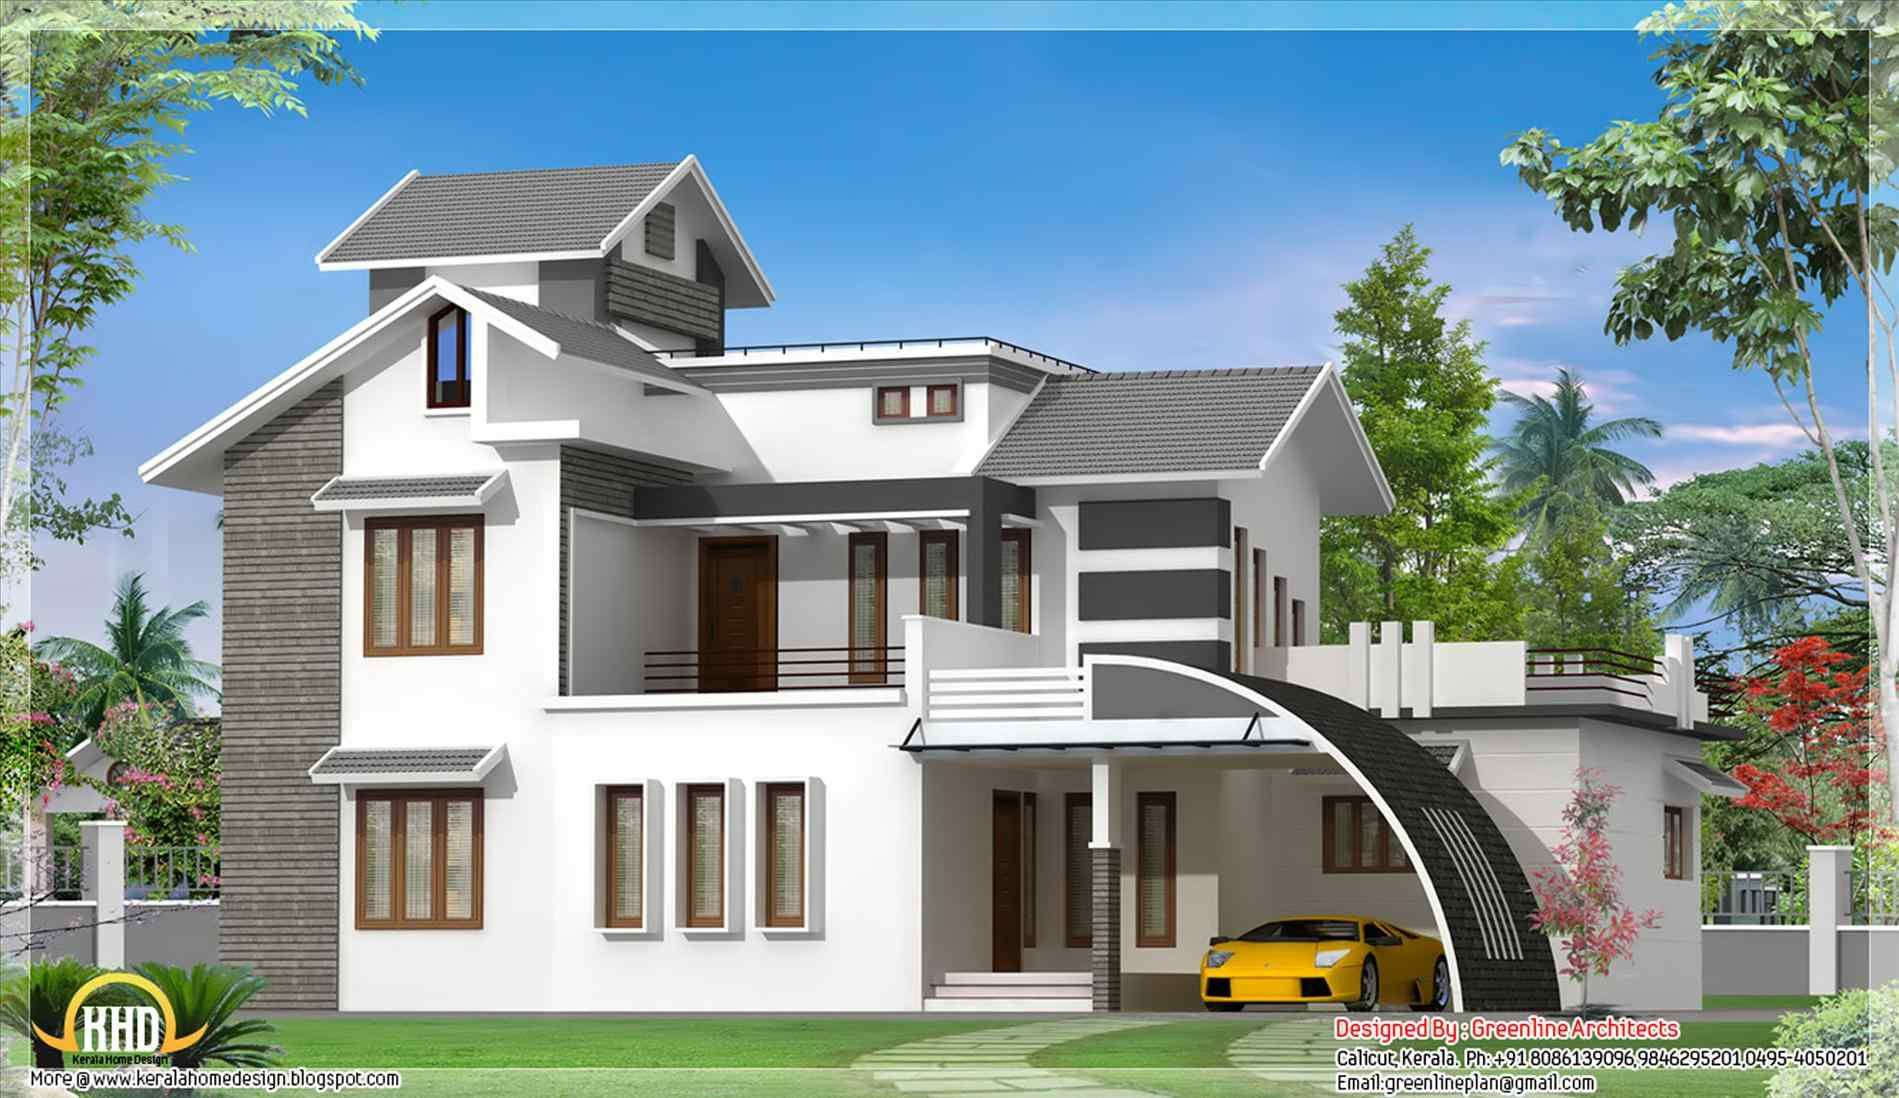 Roof Designs For Houses Home Roof Ideas Kerala House Design House Front Design Cool House Designs